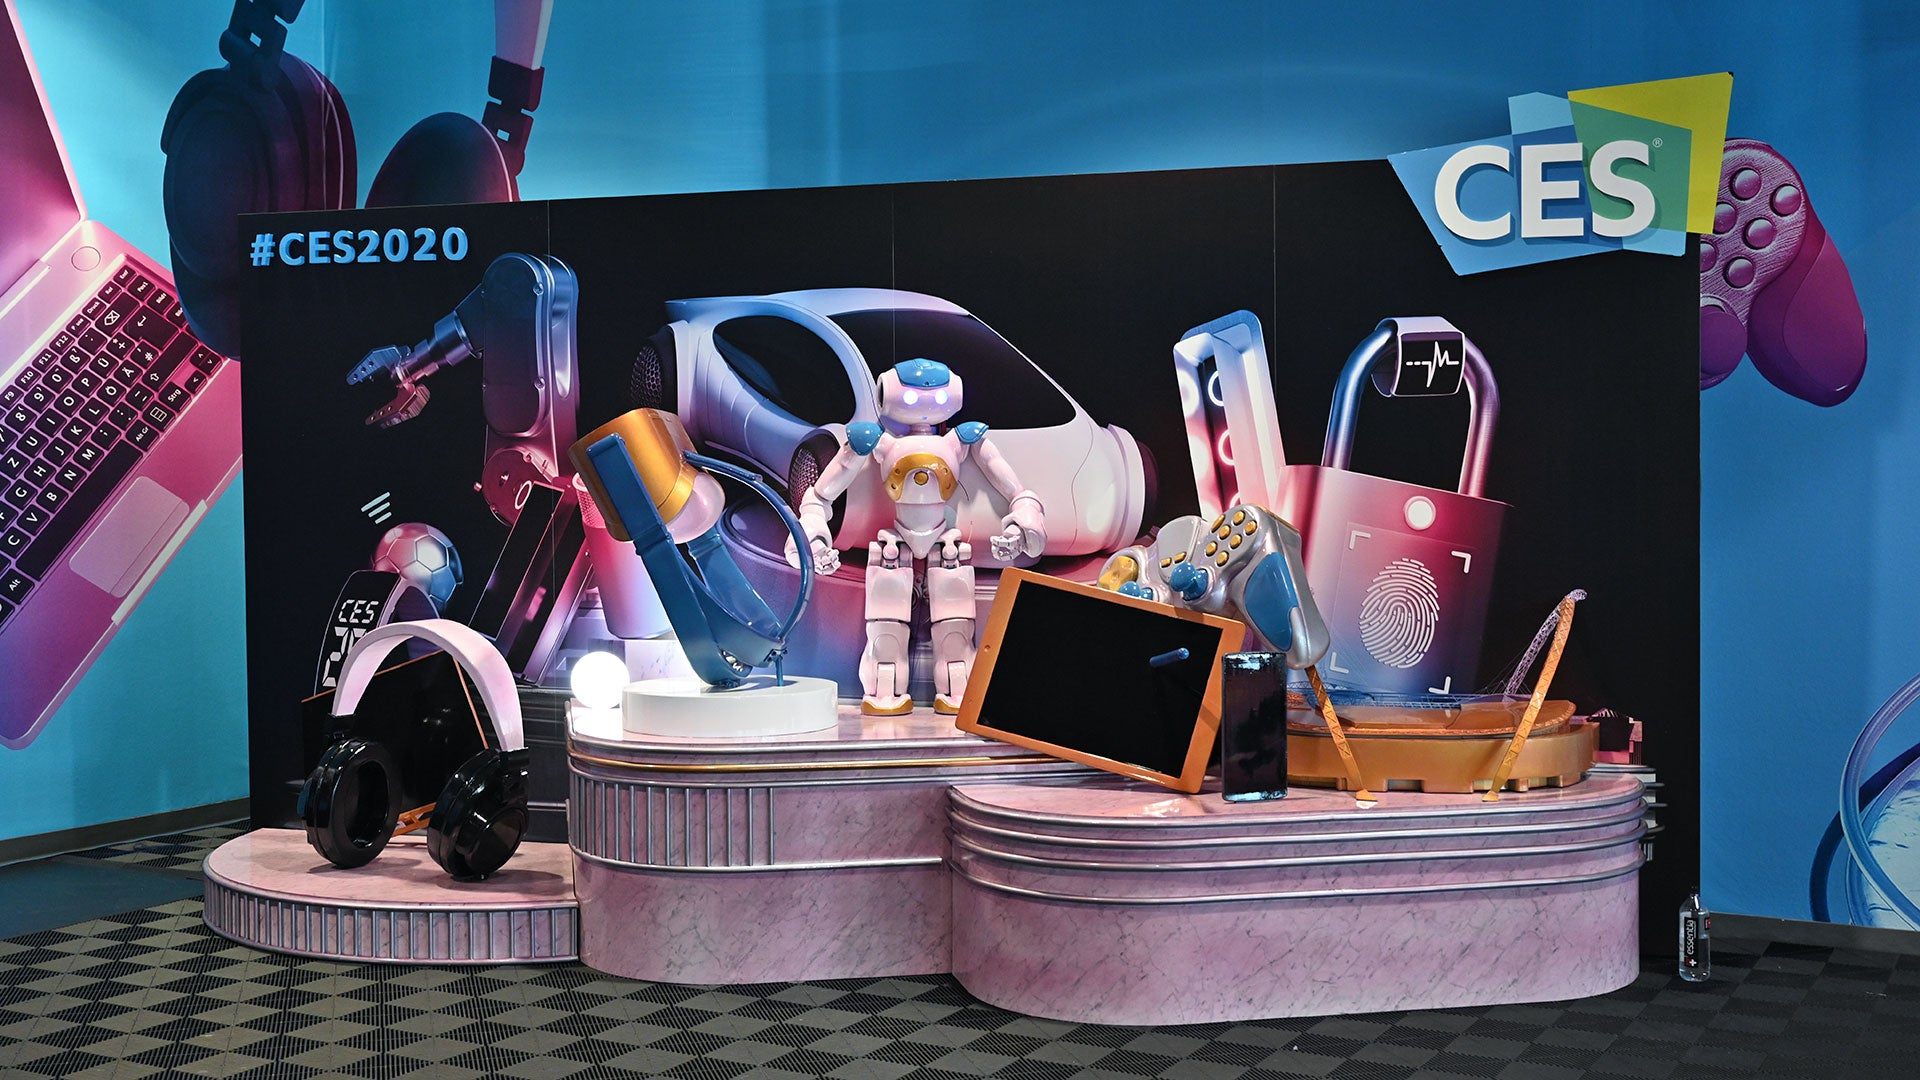 The Saddest Booth At CES 2020 (And Other Show Floor Highlights)